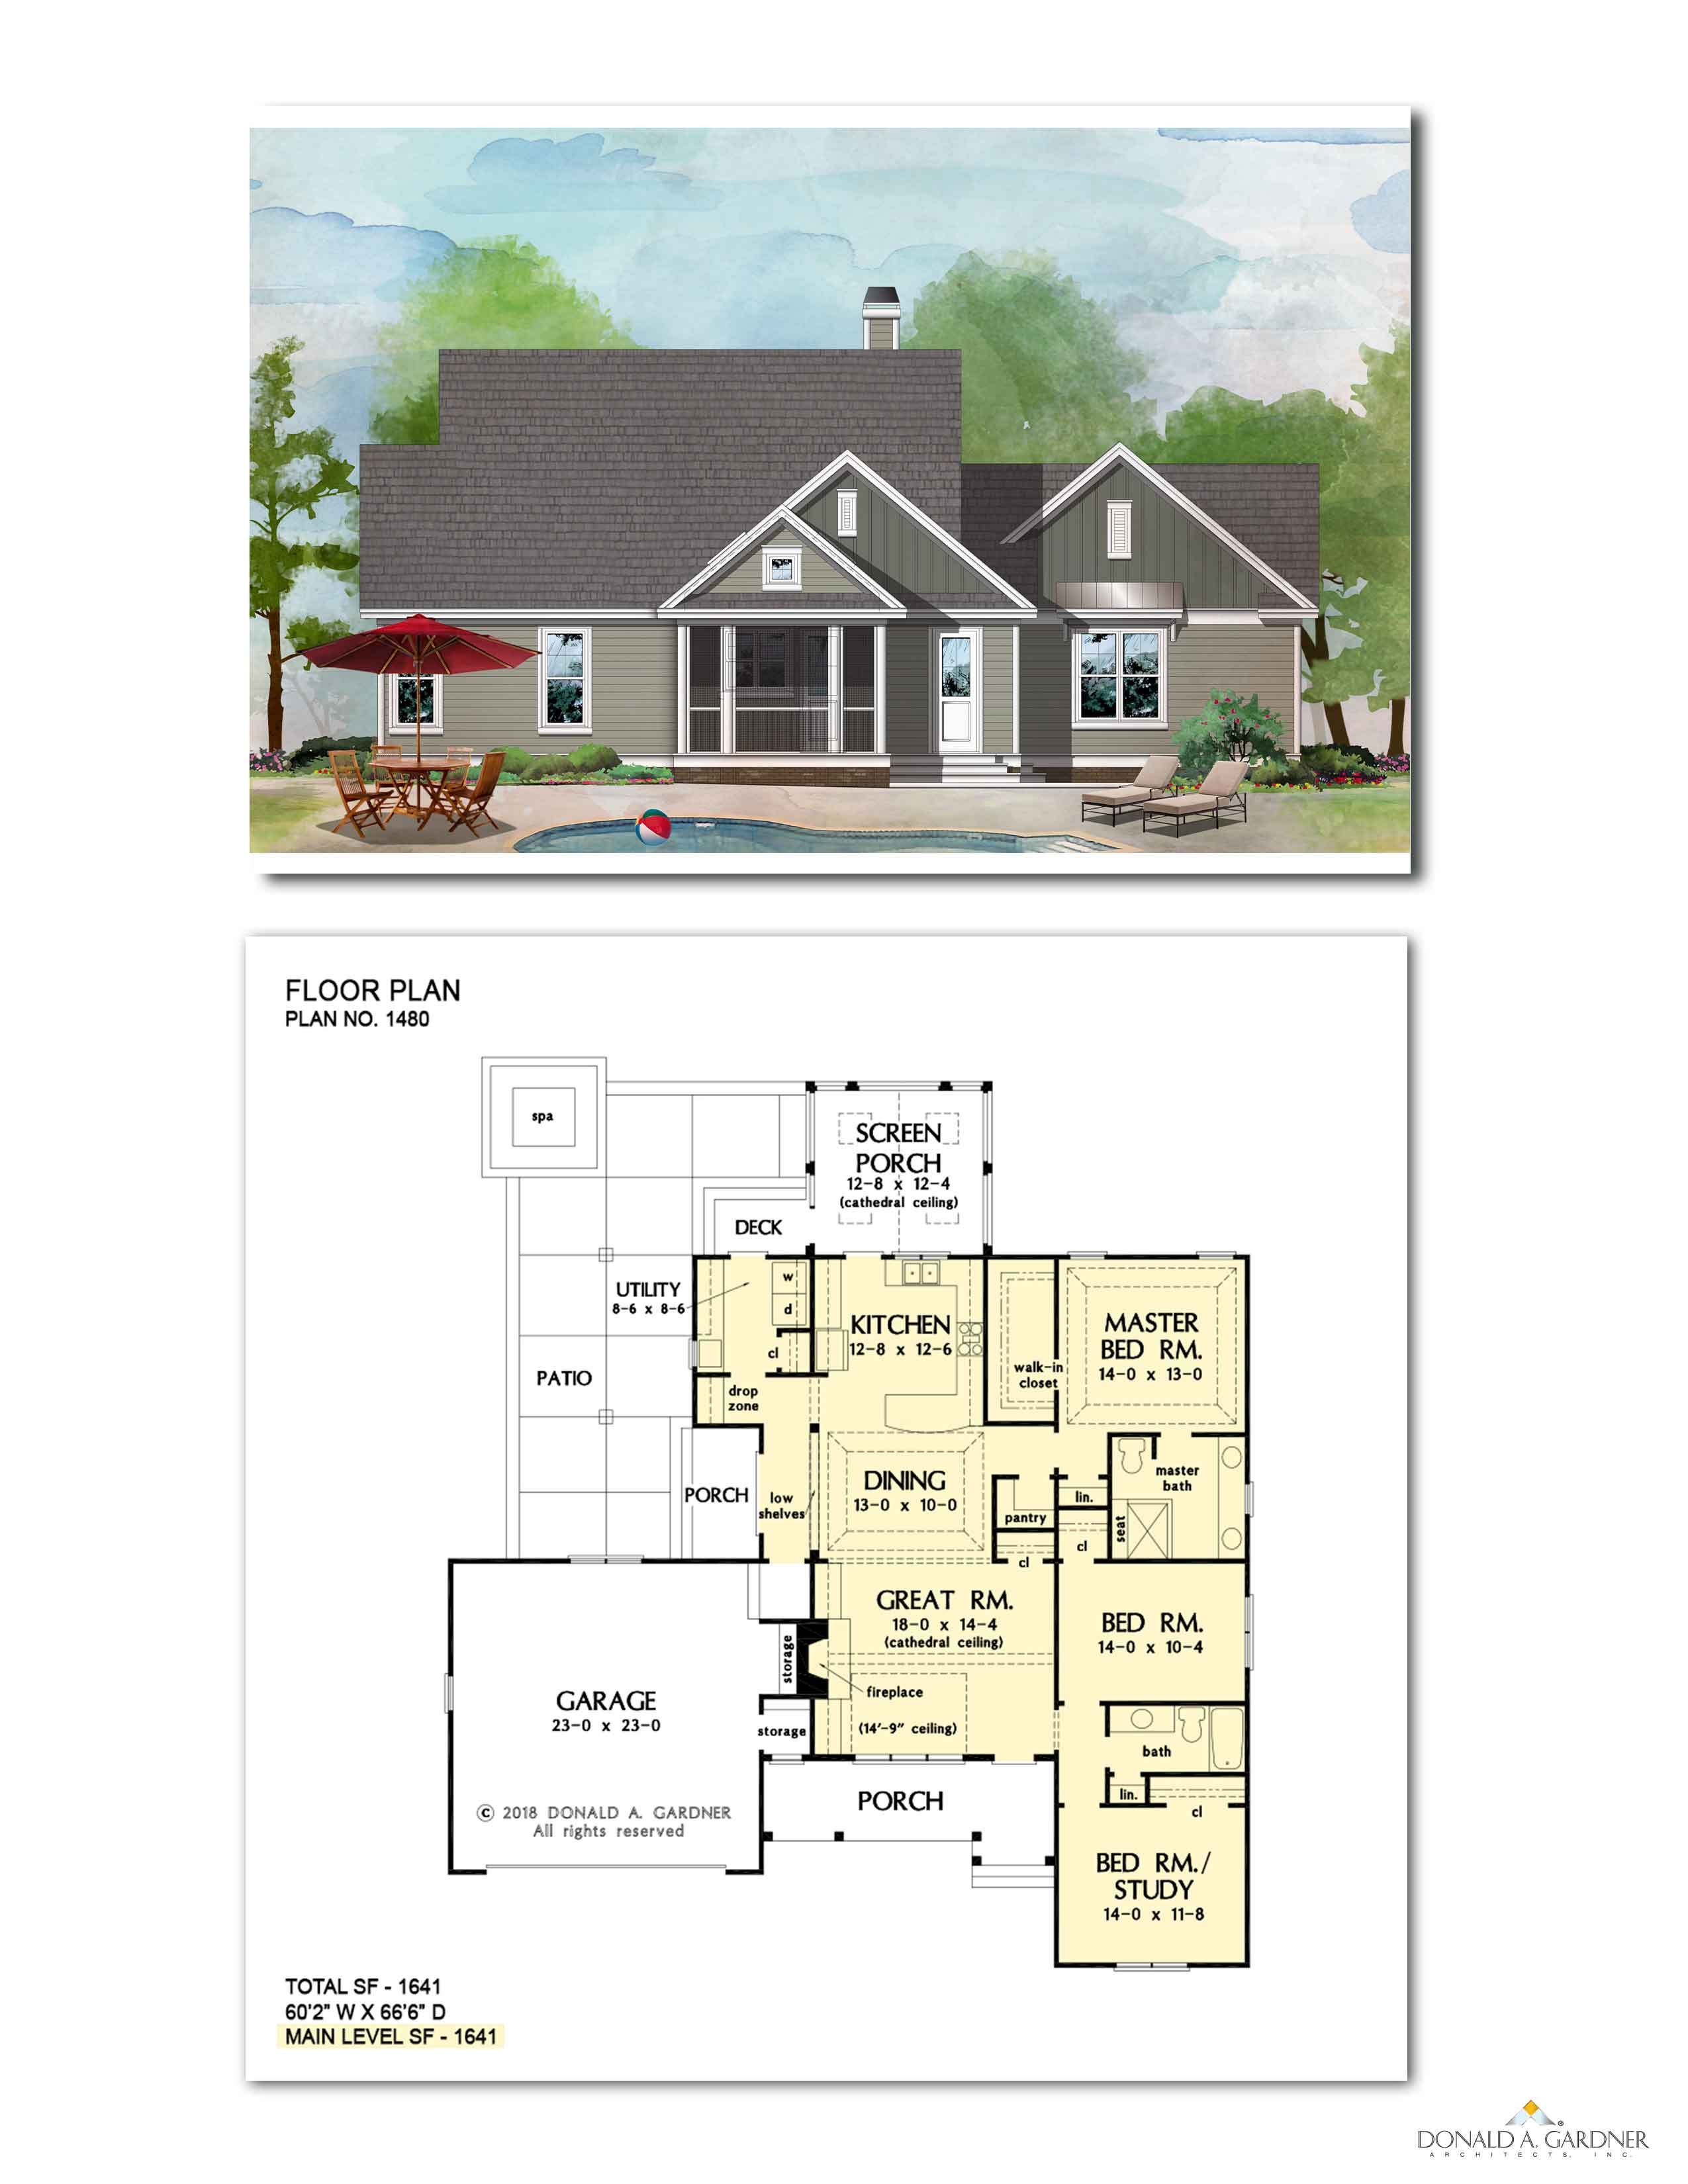 Home Plan 1480 - The Vincent